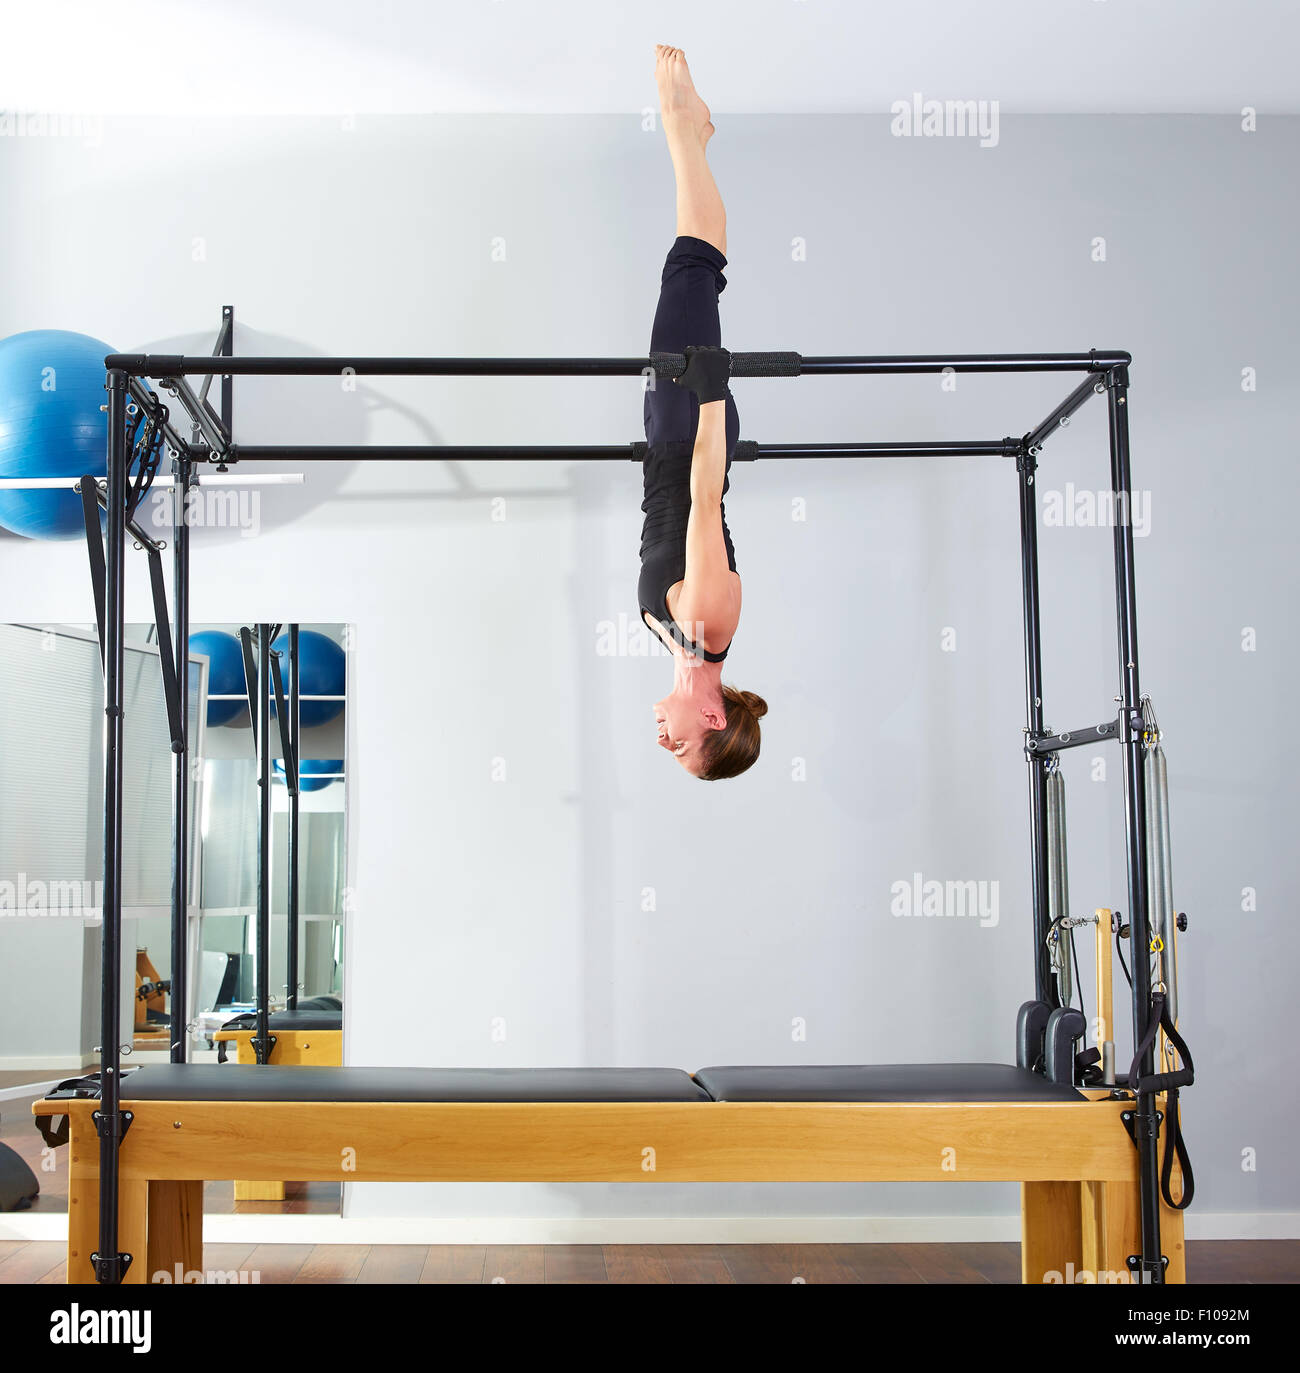 Cadillac Pilates: Pilates Woman In Cadillac Acrobatic Upside Down Balance Reformer Stock Photo: 86673628